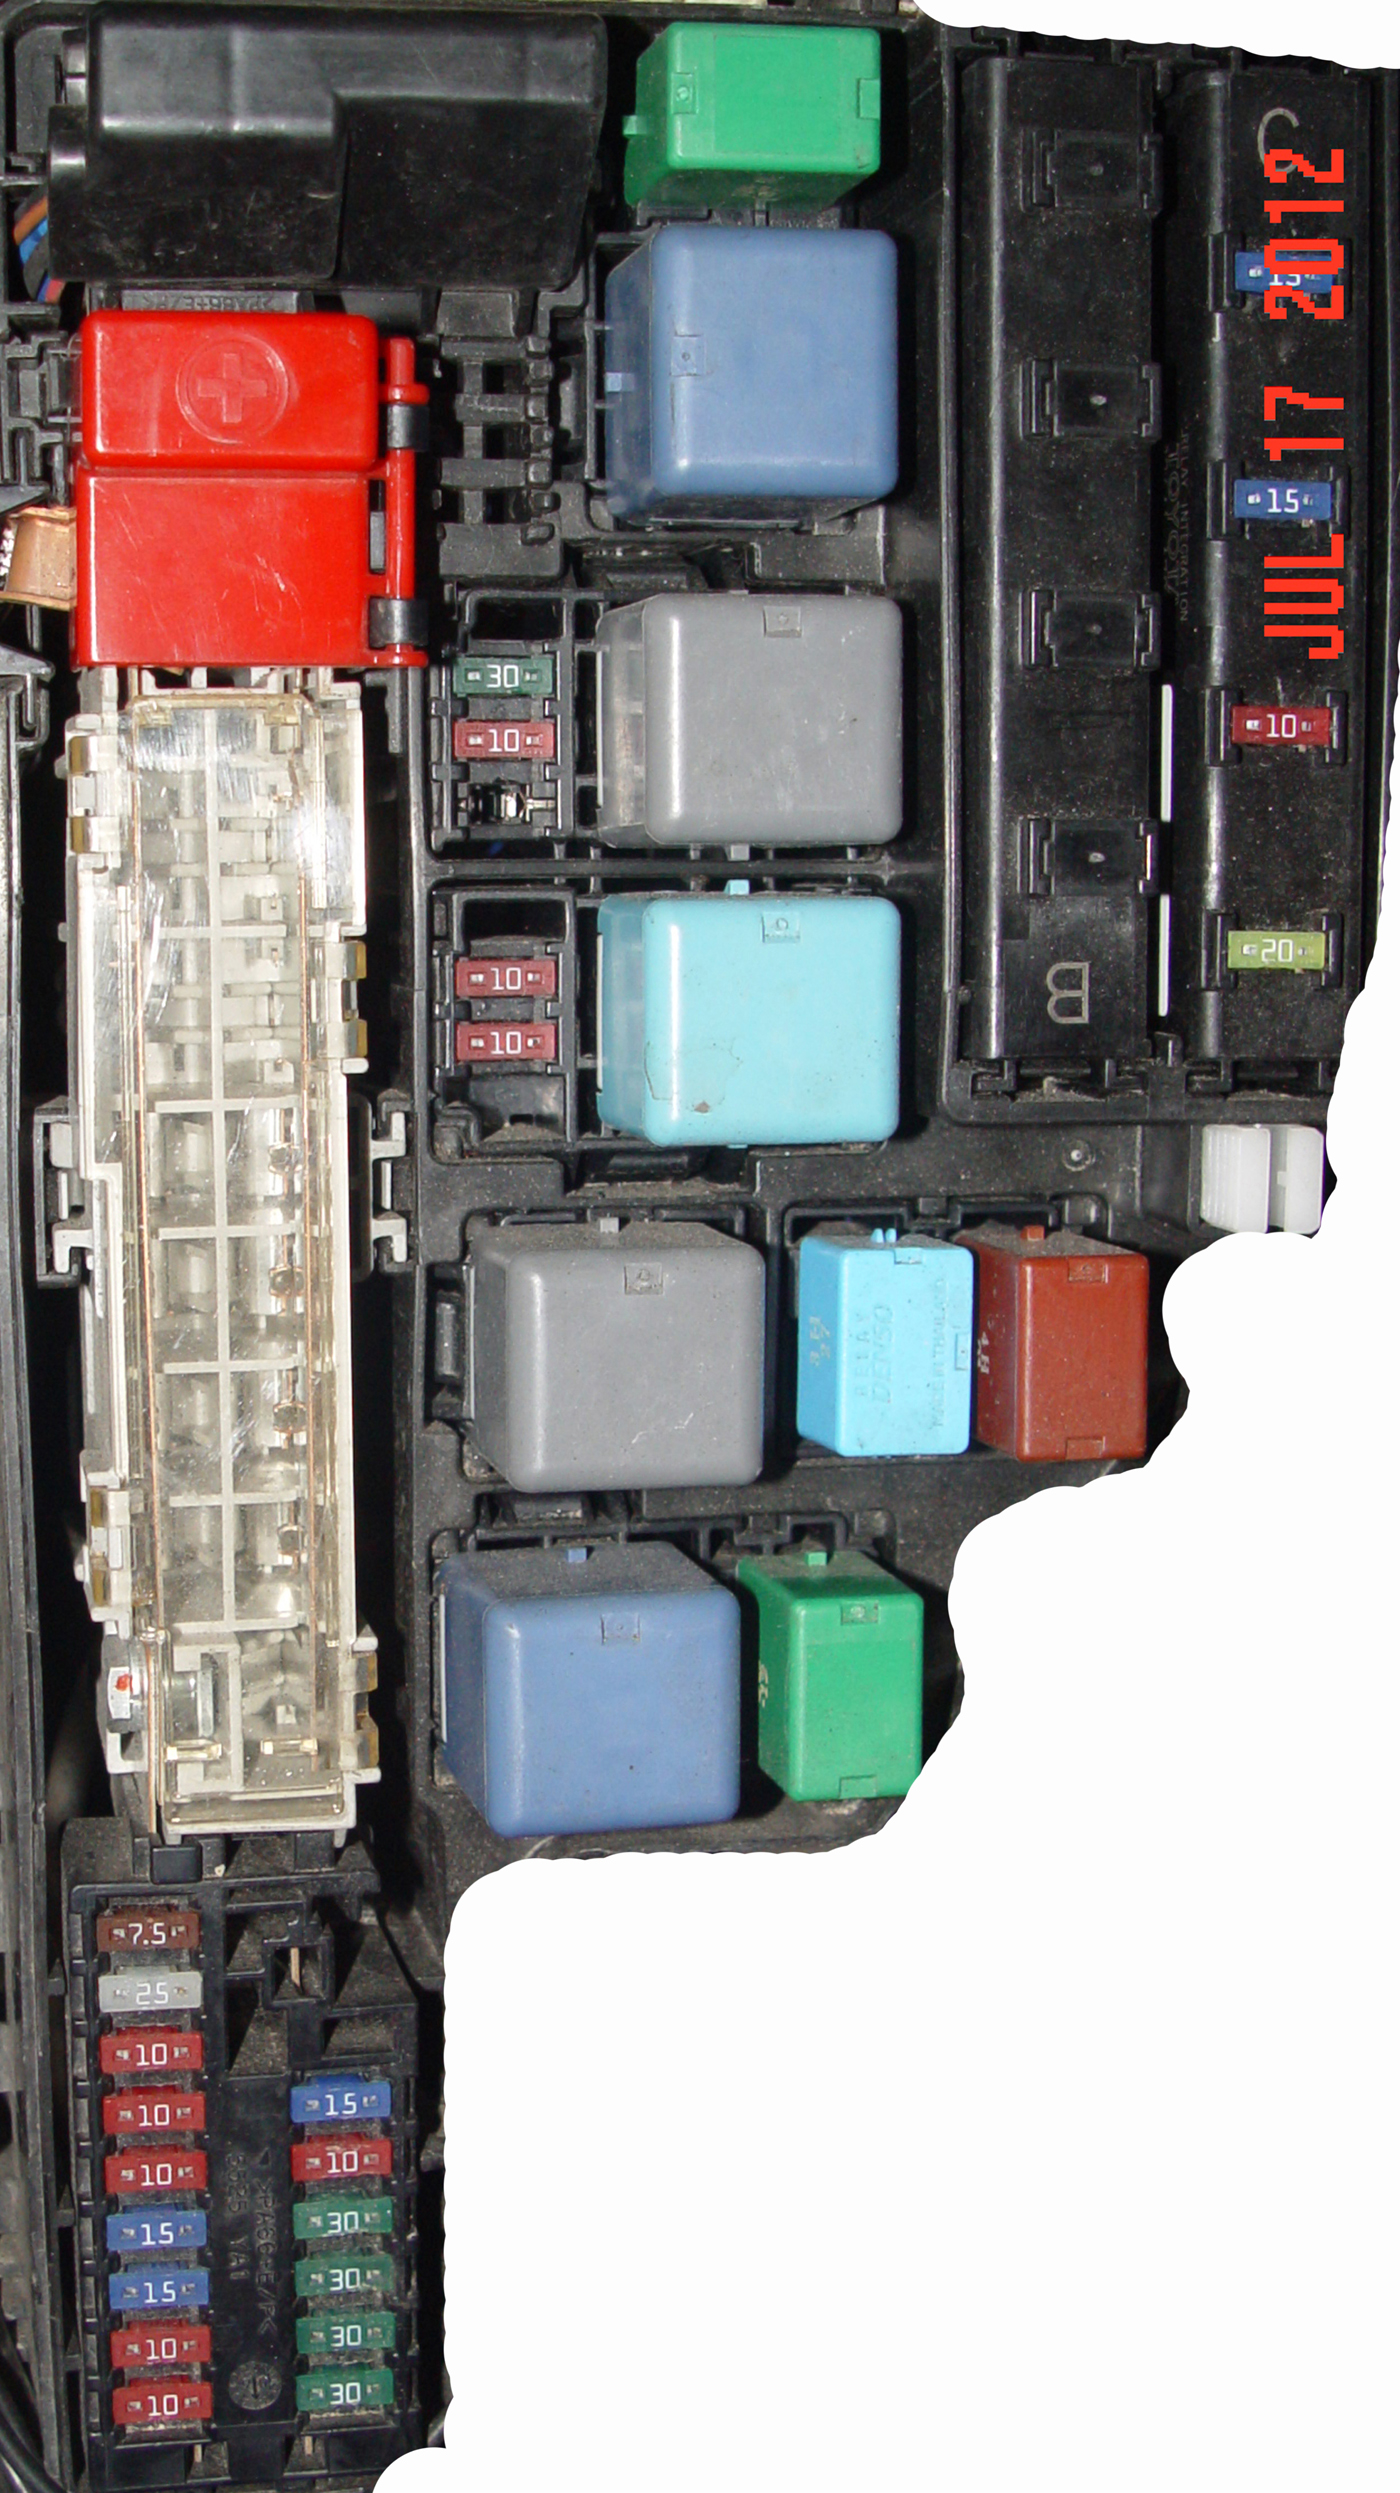 2004 toyota prius fuse box diagram iirGtIL 2008 toyota prius fuse box 2007 toyota prius fuse box \u2022 free access to 2010 prius fuse box at reclaimingppi.co